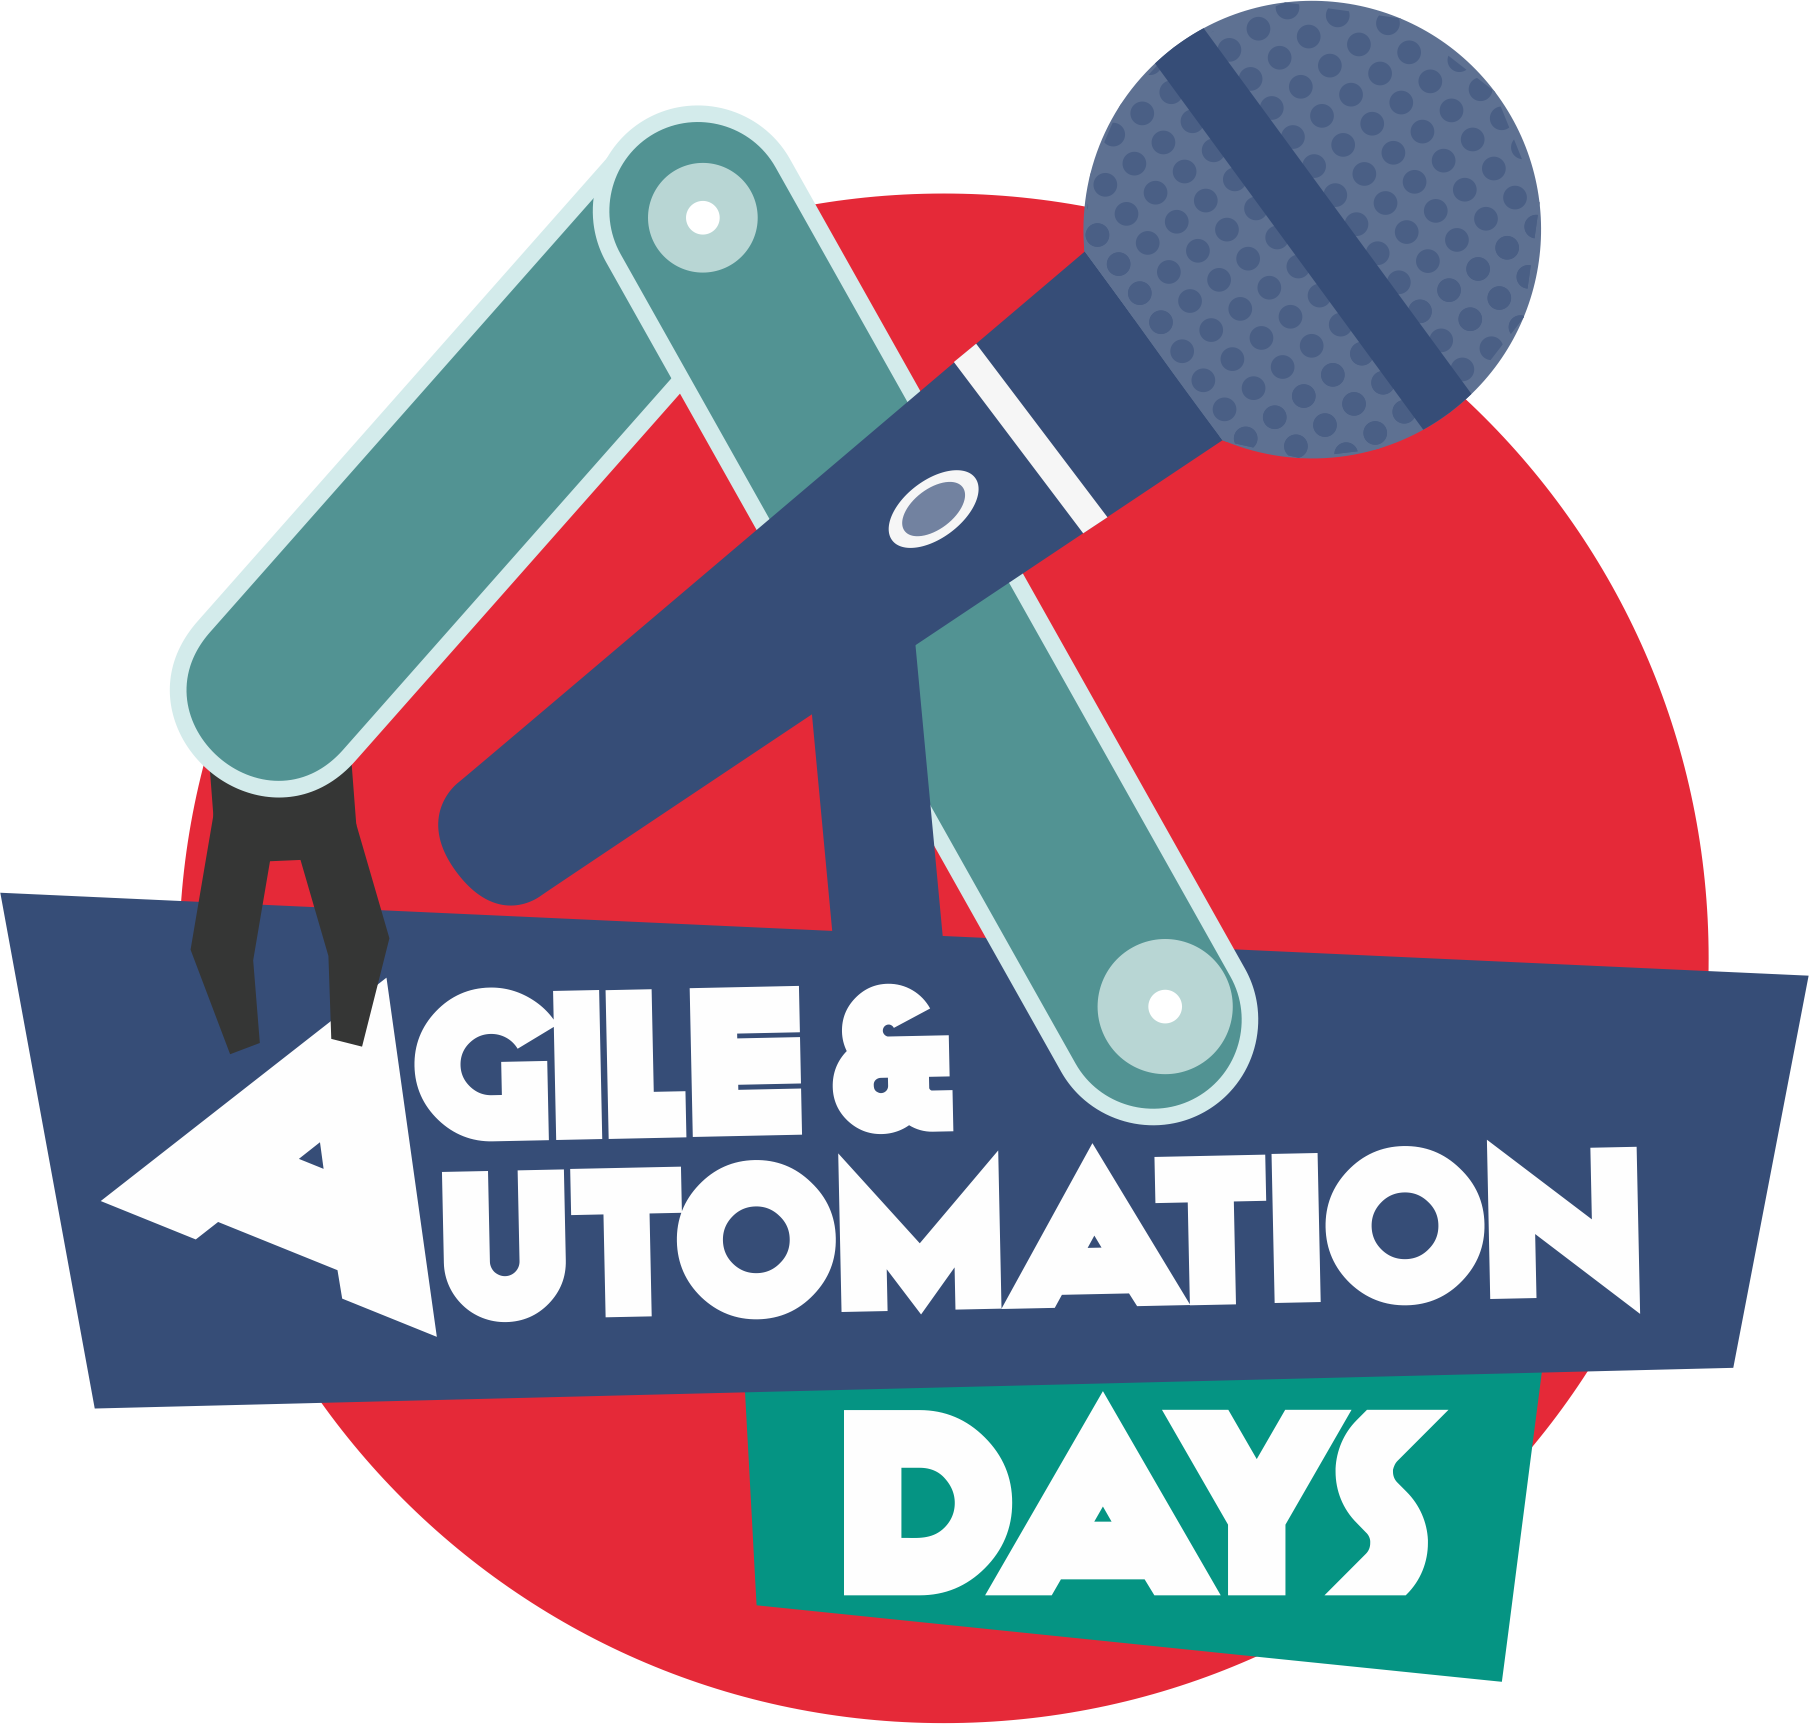 Agile & Automation Days